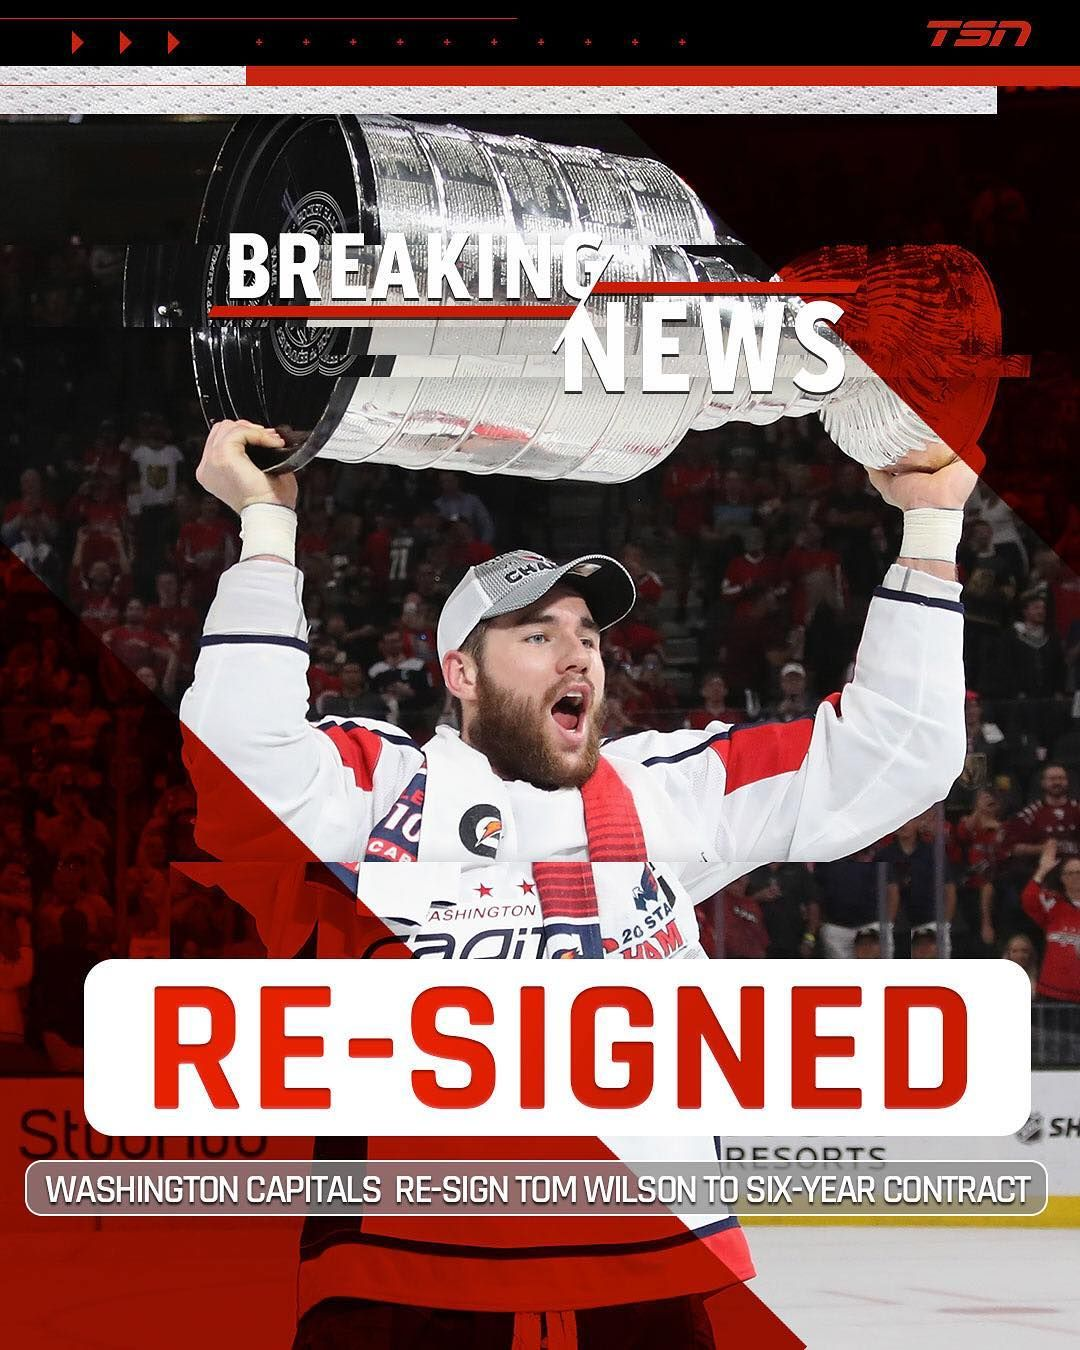 9d3089fe515 The Washington  Capitals have re-signed Tom Wilson to a six-year contract  that will carry an average annual value of  5.17 million.